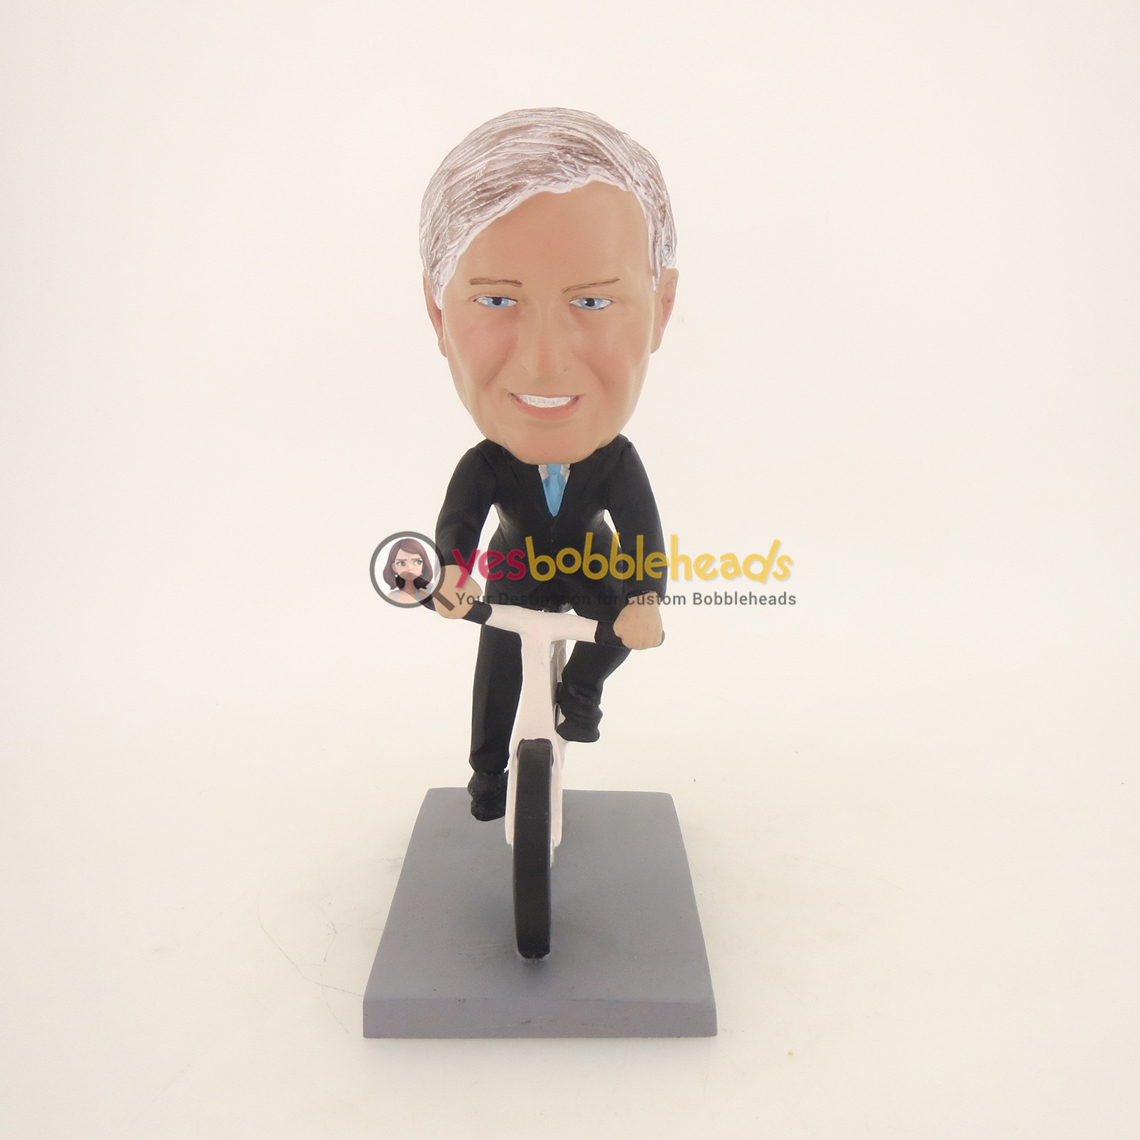 Picture of Custom Bobblehead Doll: Black Suit Man Riding Bicycle